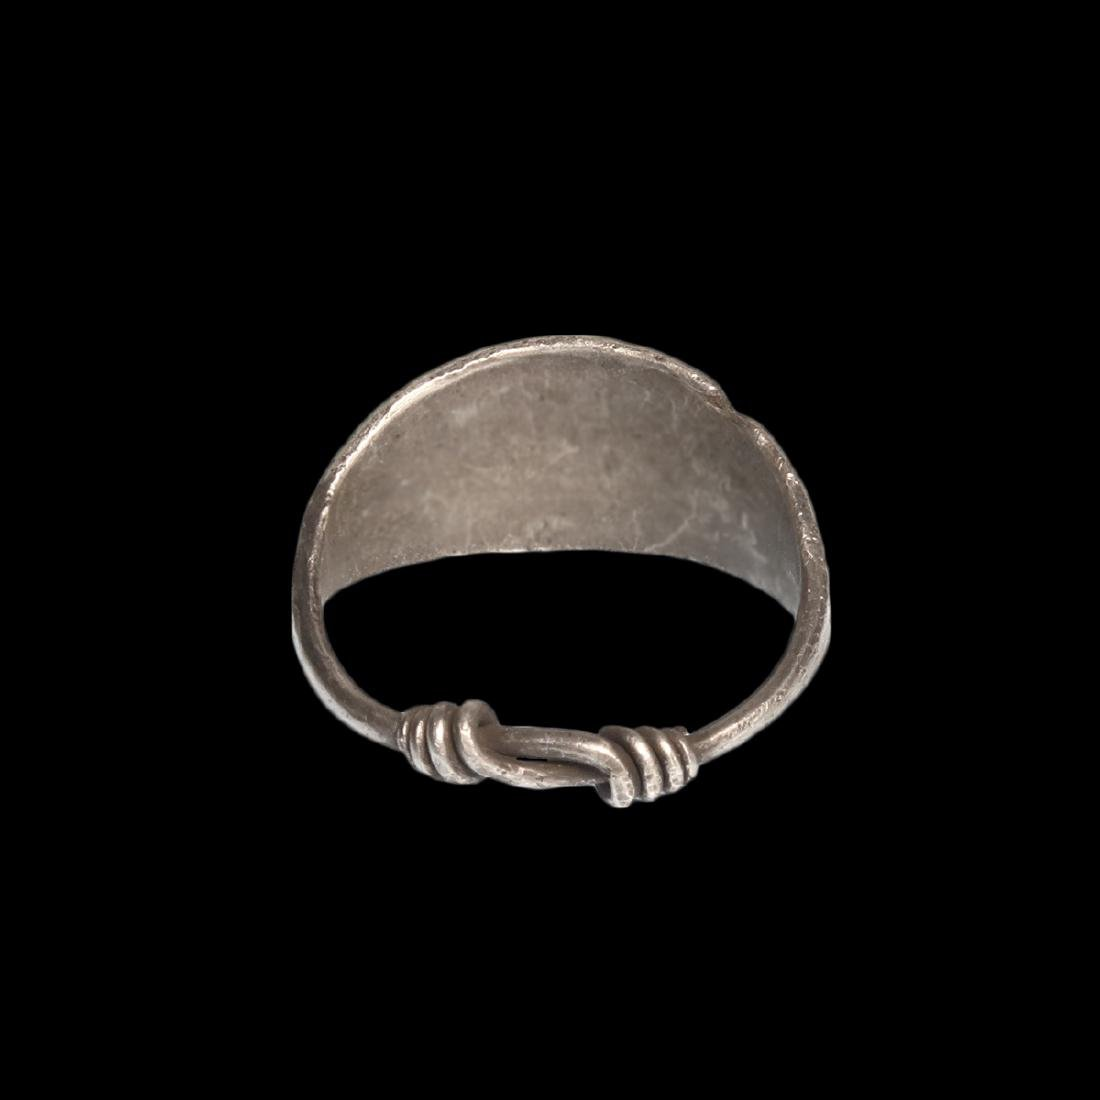 Viking Silver Ring with Wolf's Tooth Decoration - 5